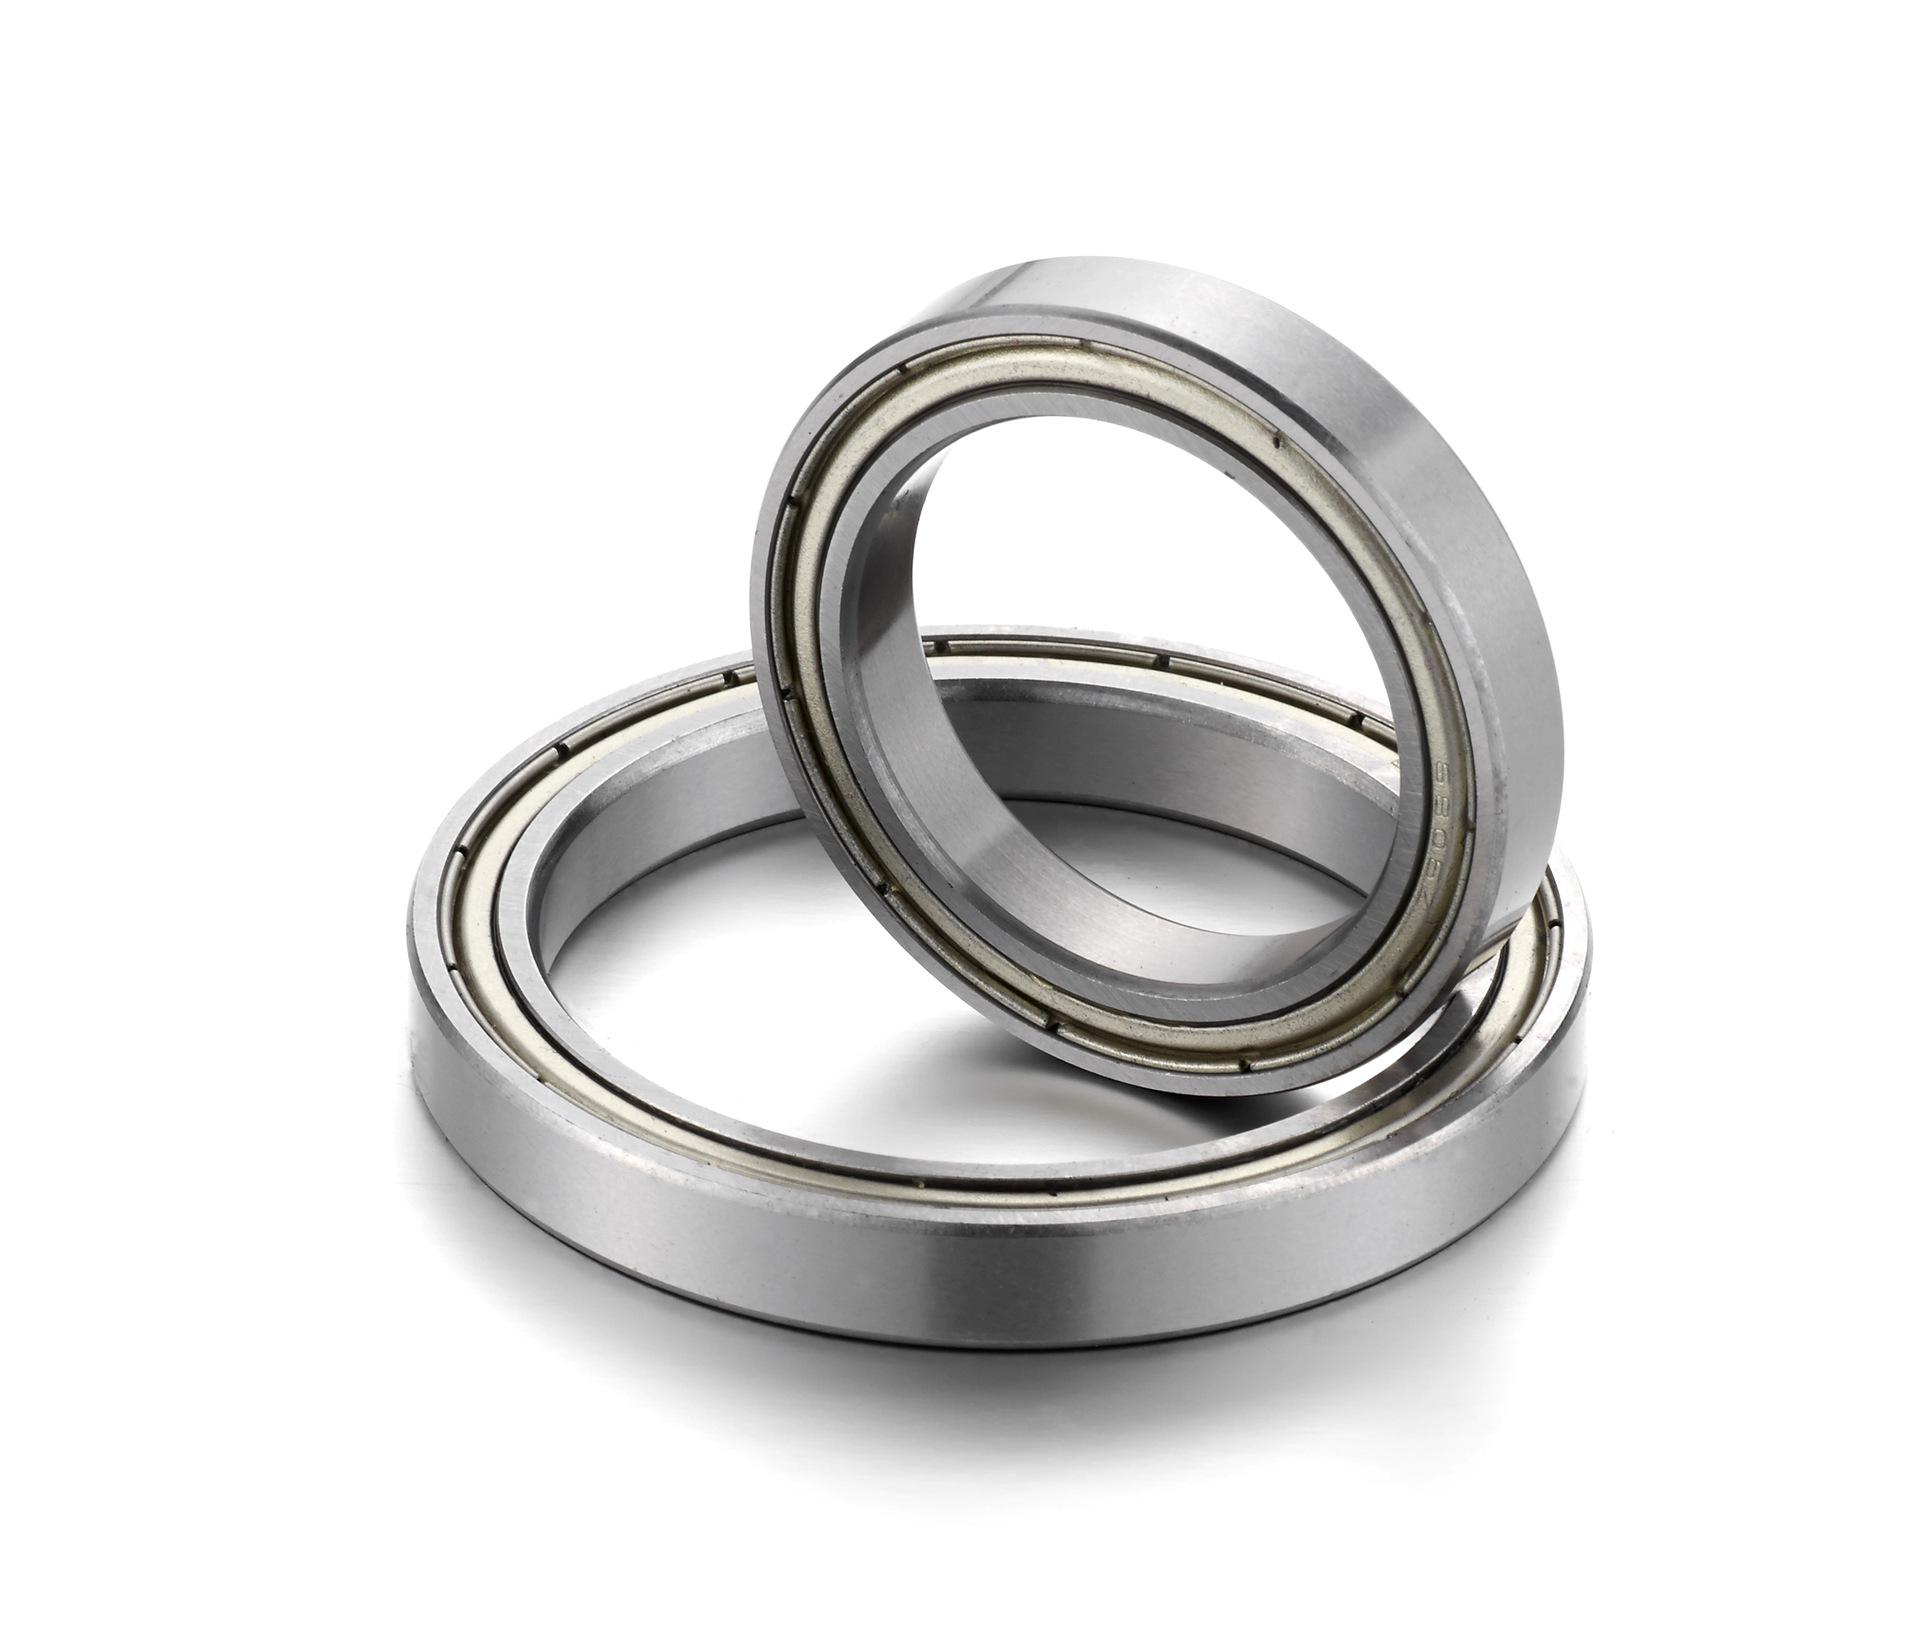 6830M ABEC-1 150x190x20mm Metric Thin Section Bearings 61830M Brass cage beko dsfs 6830